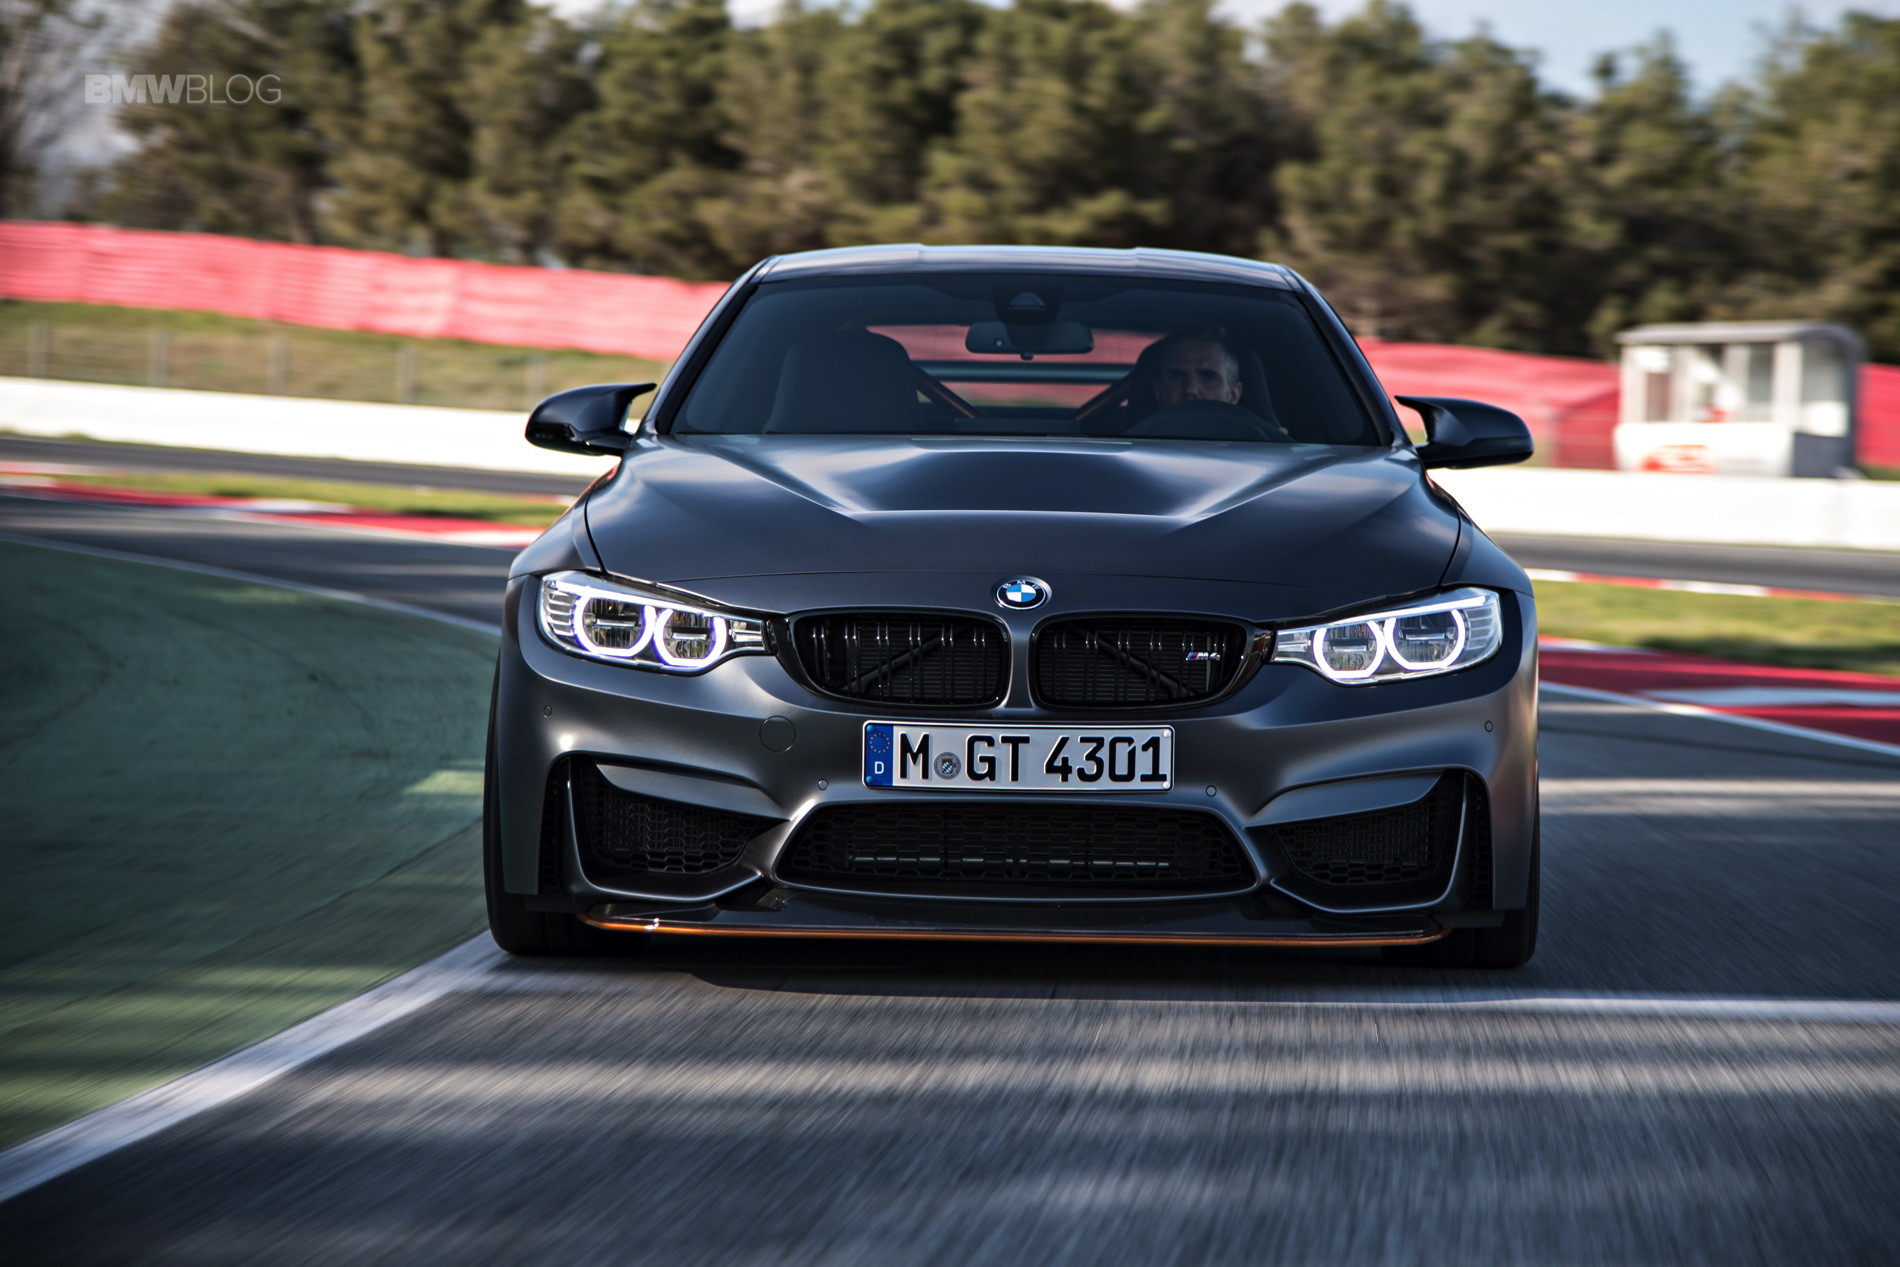 2018 Bmw M5 And M4 Gts Together On The